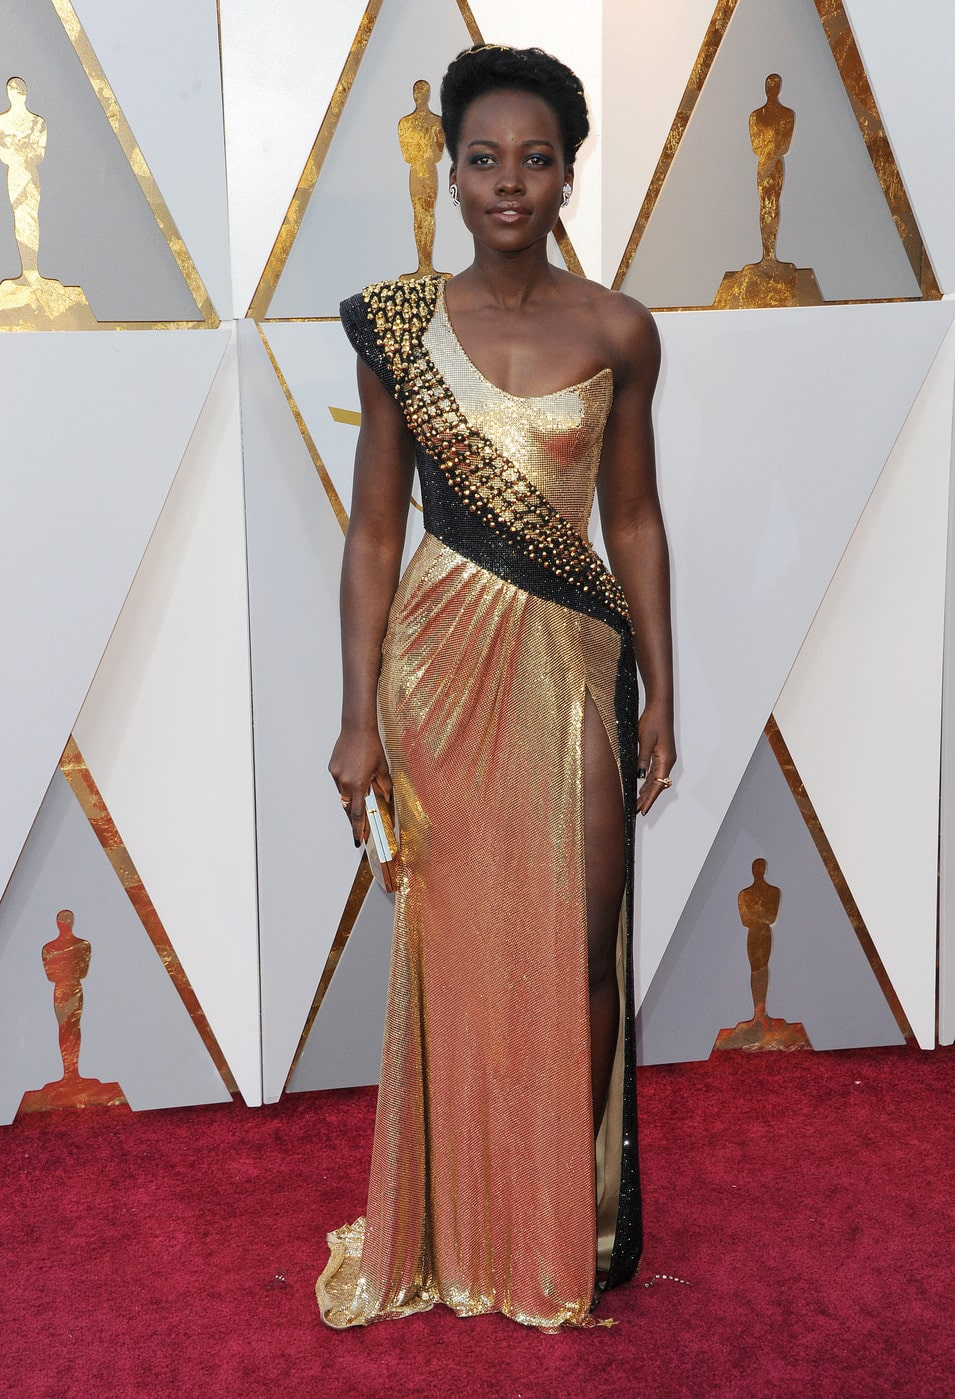 Lupita Nyong'o in Versace at the 2018 Oscars